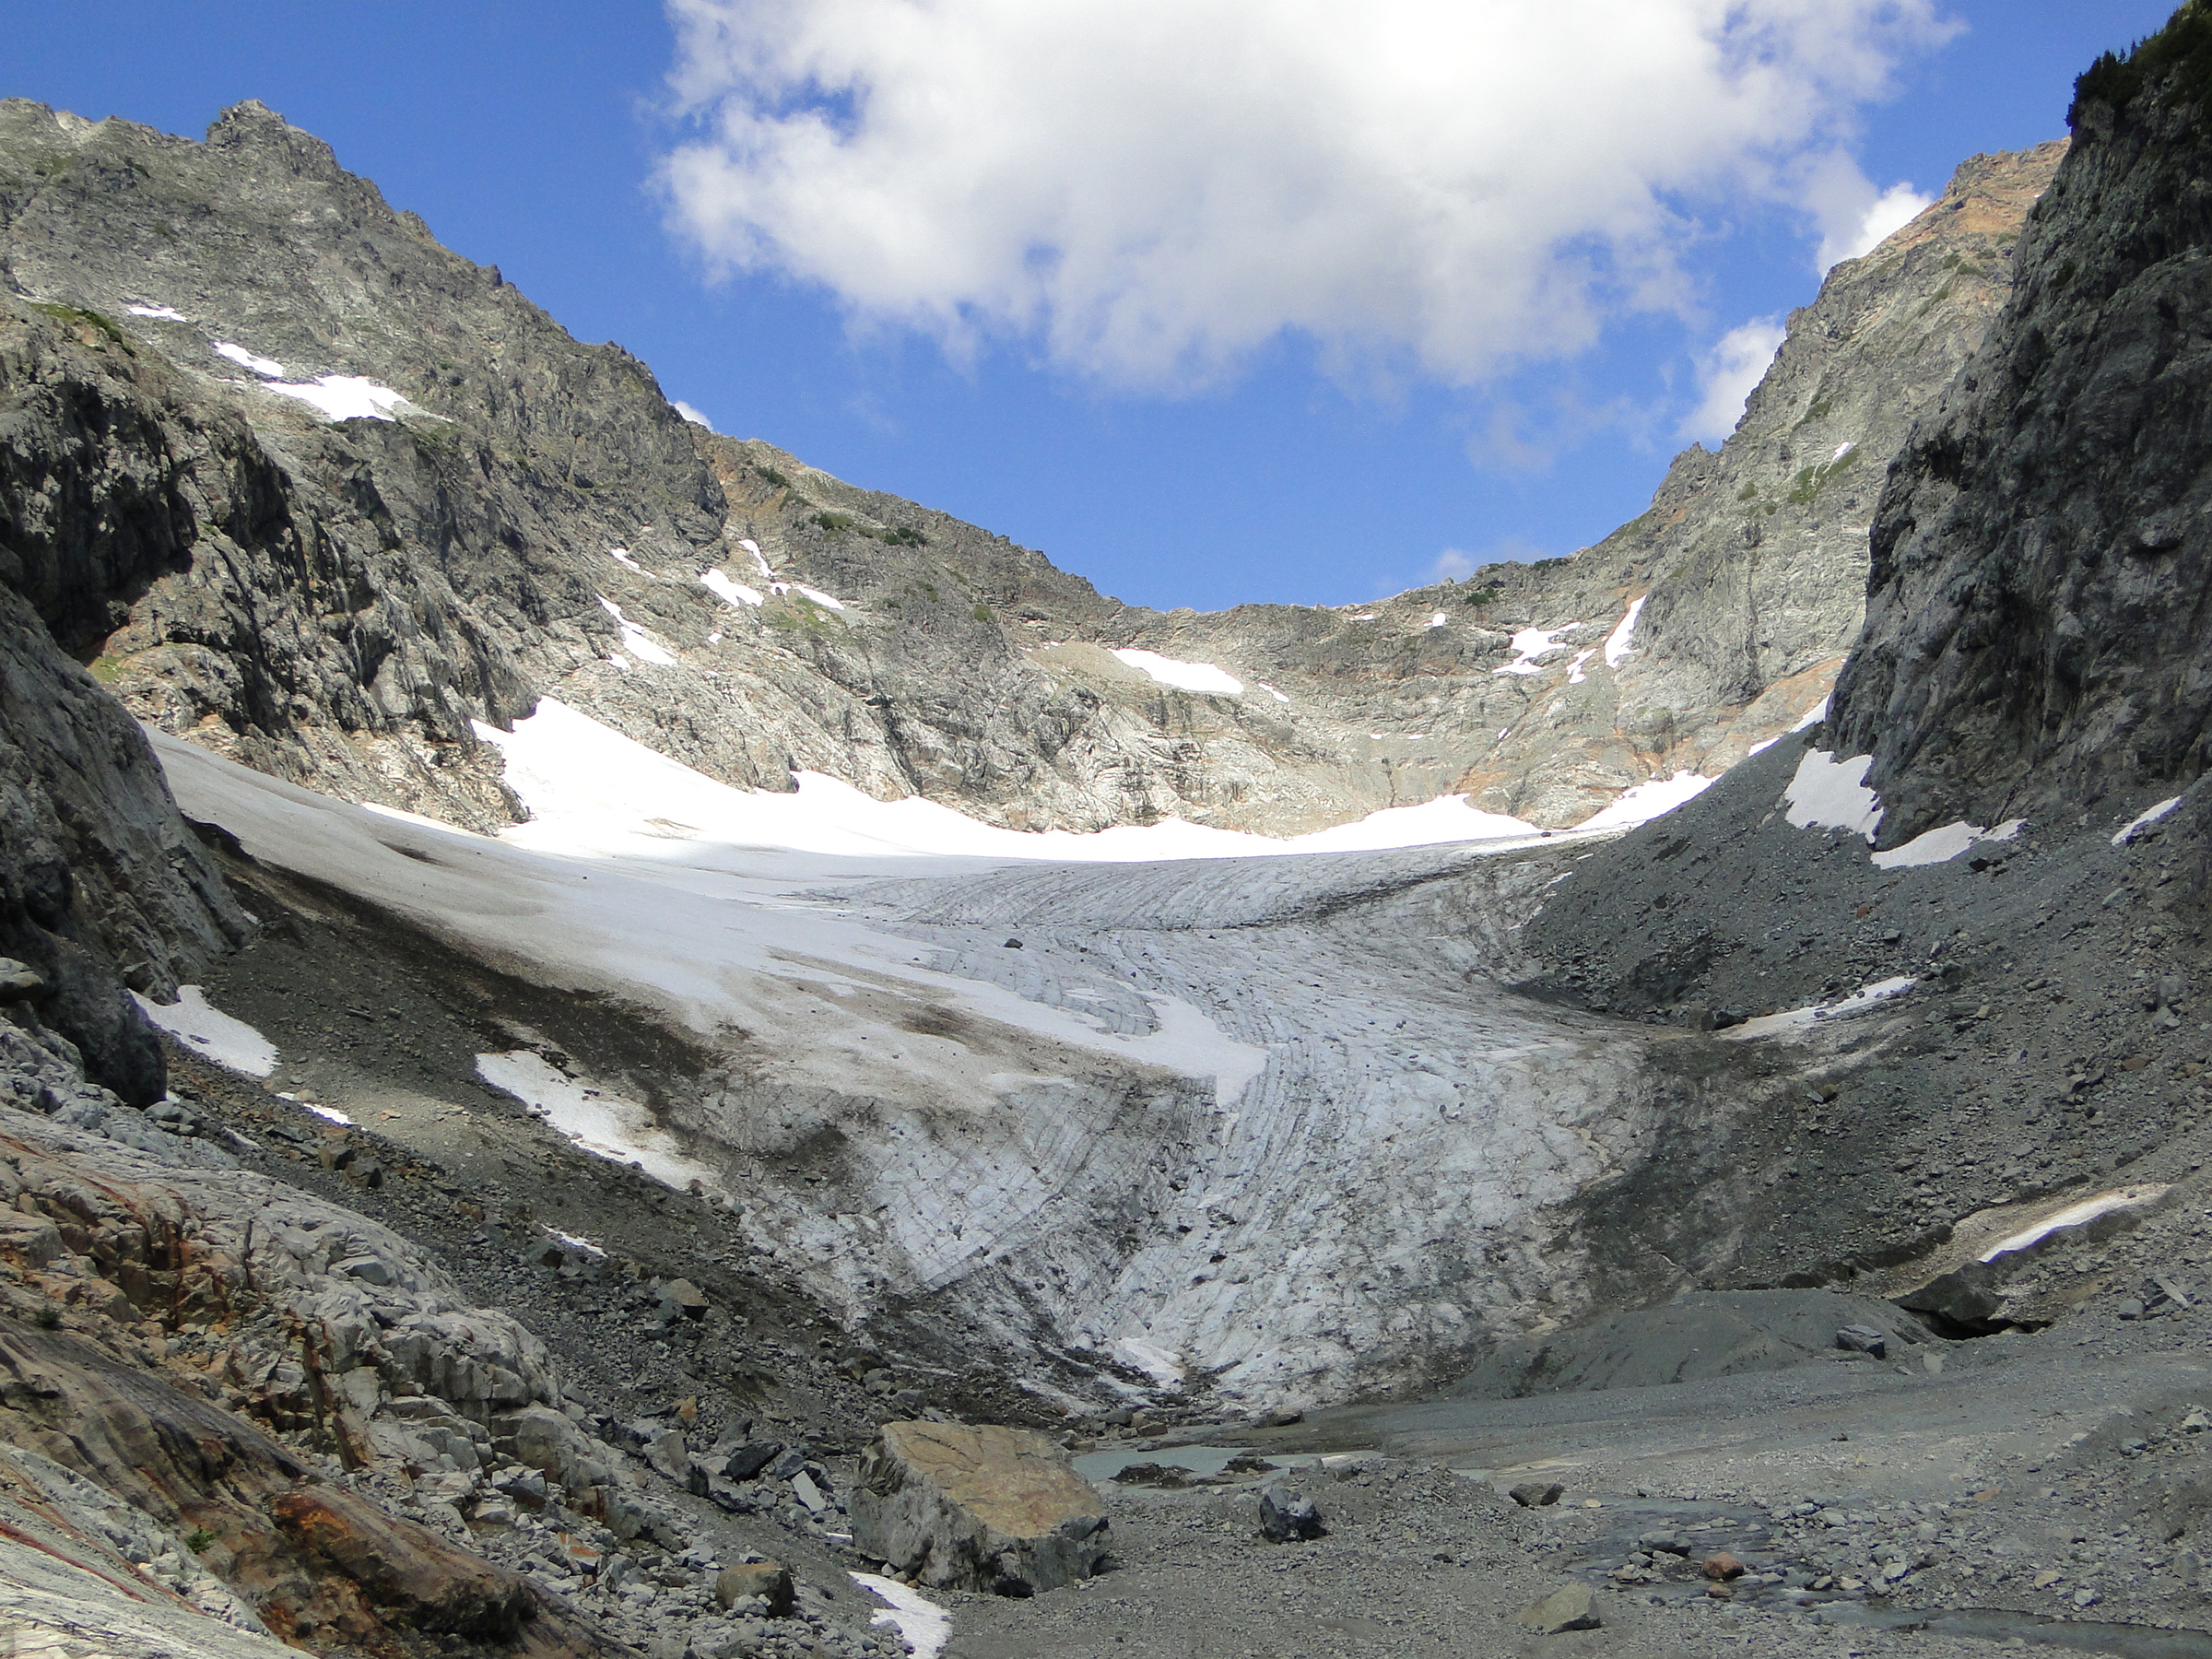 Columbia (2057) Glacier in August 2016 (taken by Mauri Pelto on 11/08/2016)